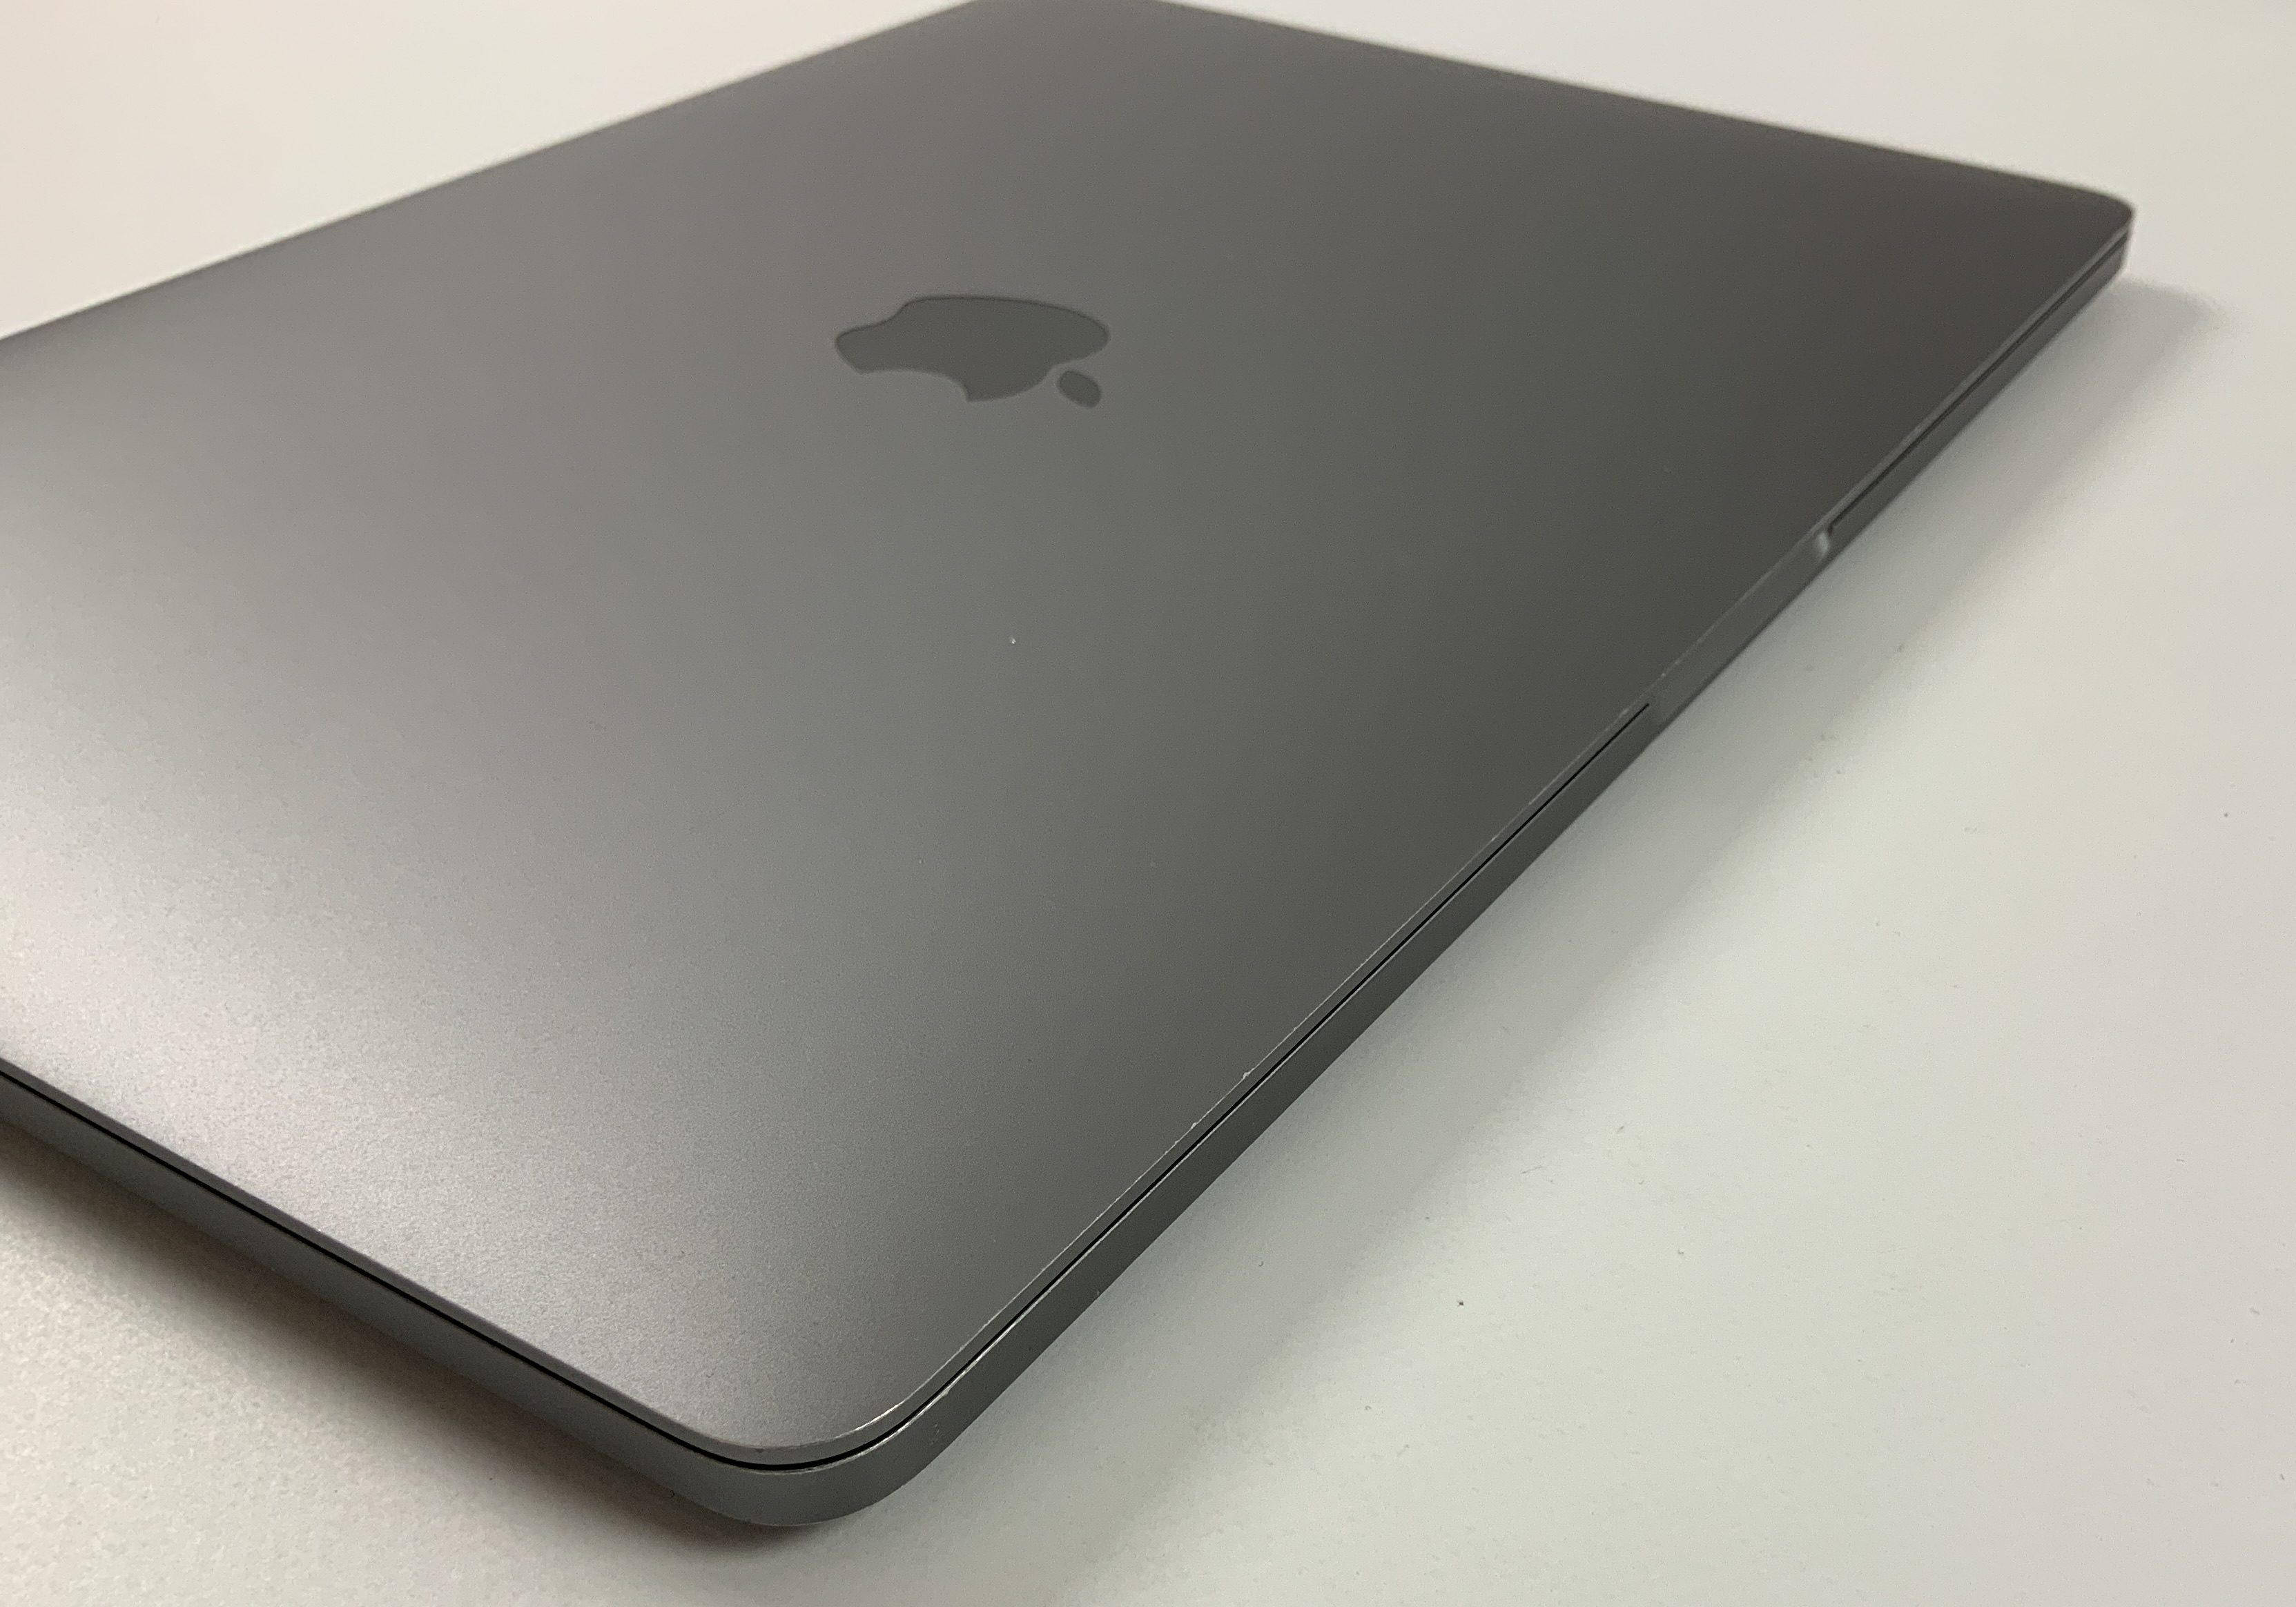 "MacBook Pro 13"" 2TBT Mid 2017 (Intel Core i5 2.3 GHz 8 GB RAM 128 GB SSD), Space Gray, Intel Core i5 2.3 GHz, 8 GB RAM, 128 GB SSD, Bild 4"